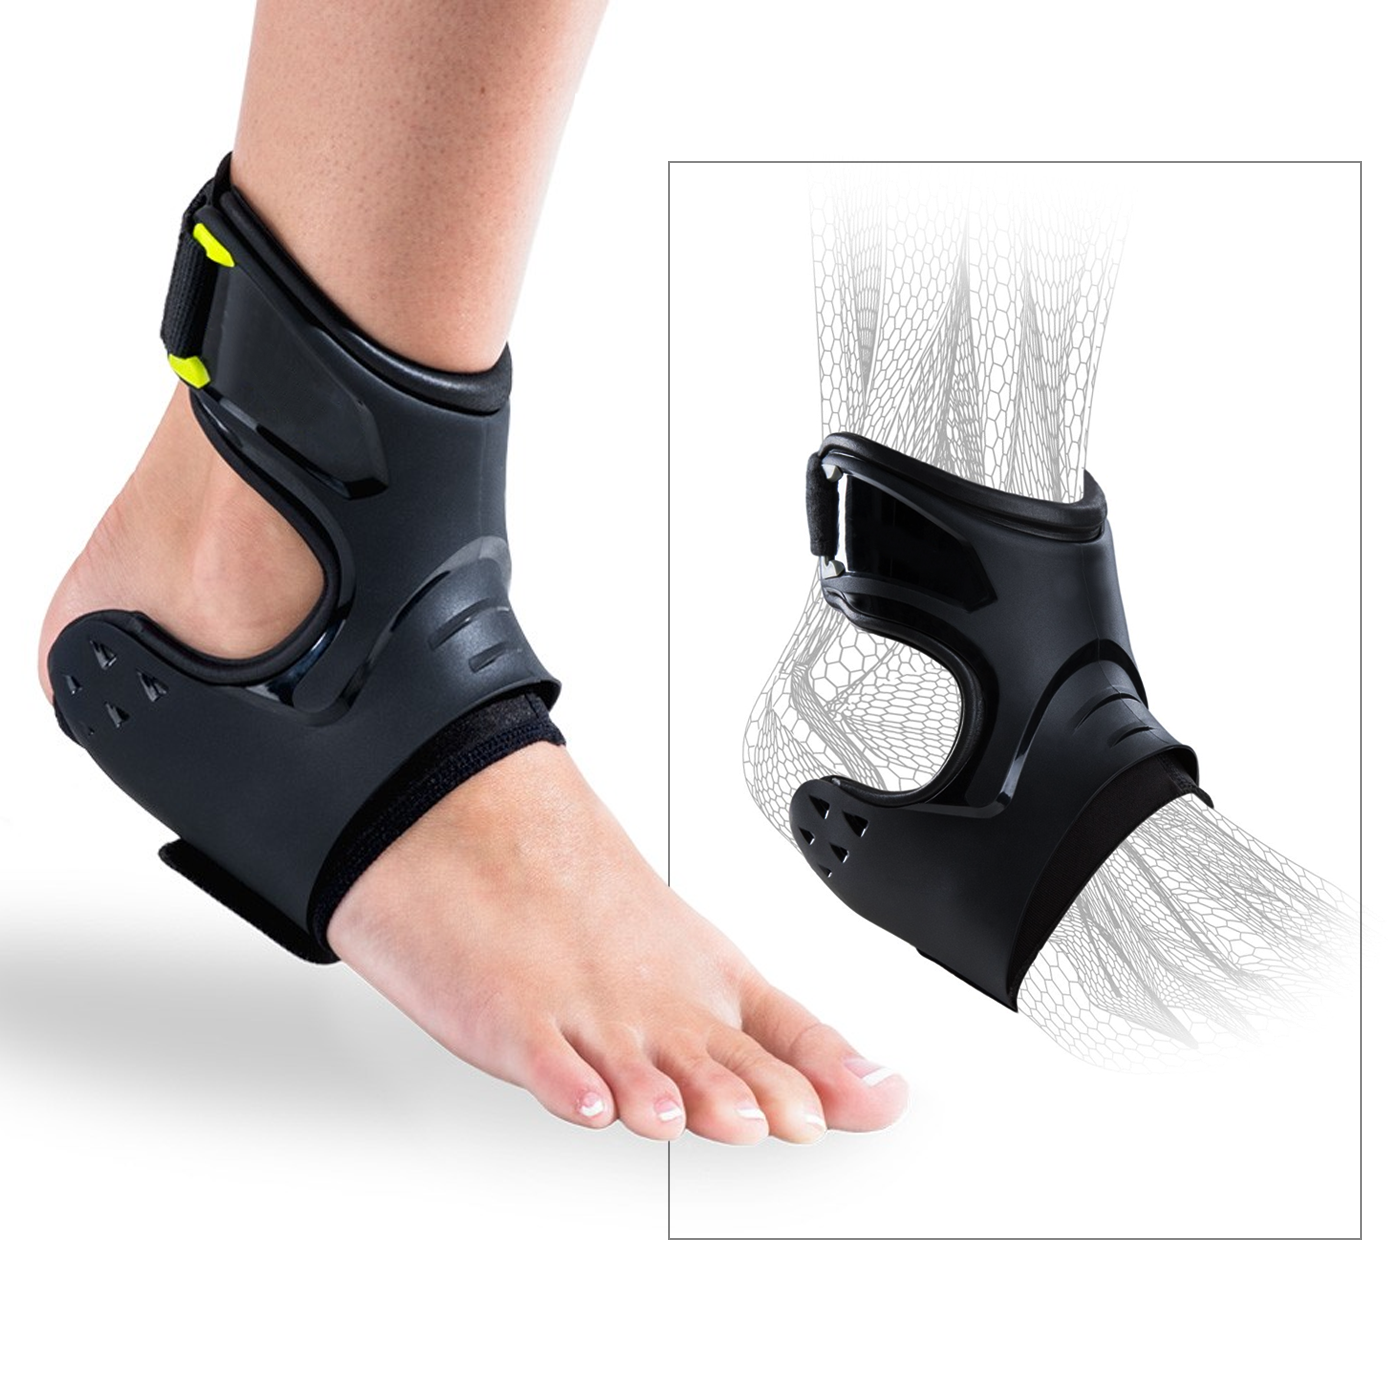 A patient and a diagram of an ankle both wearing ankle braces